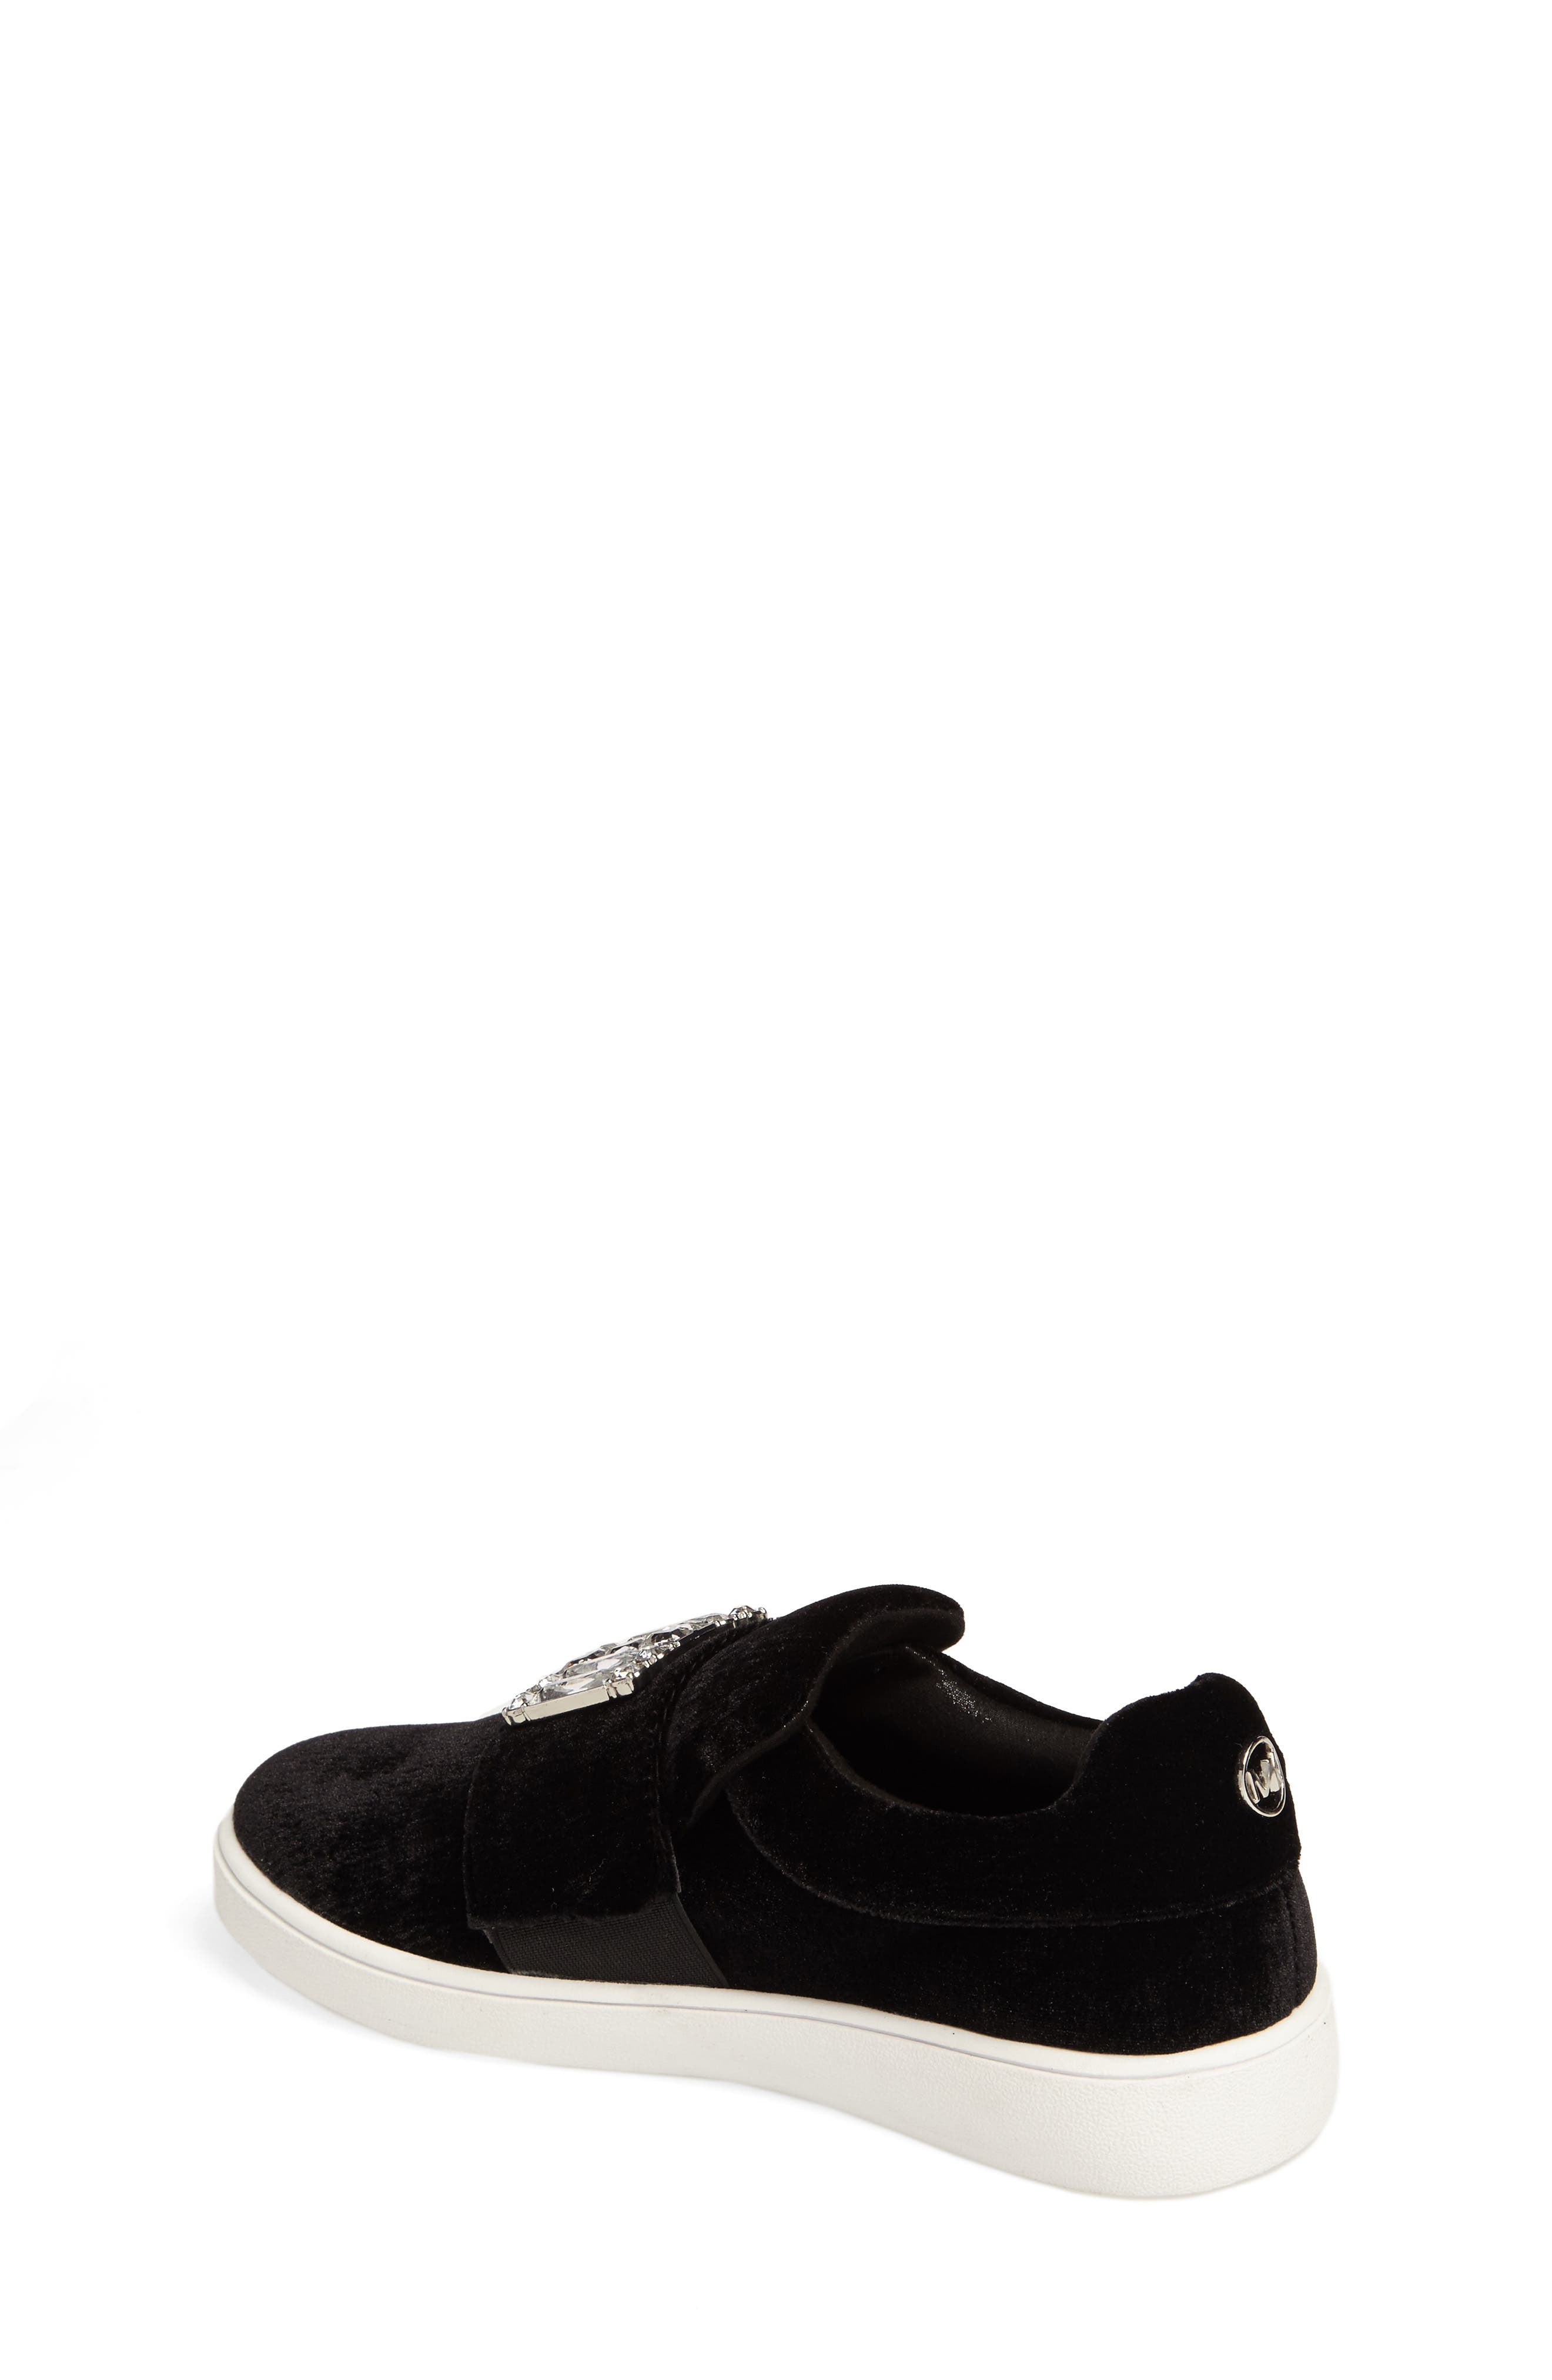 Alternate Image 2  - MICHAEL Michael Kors Ivy Dream Embellished Slip-On Sneaker (Little Kid & Big Kid)